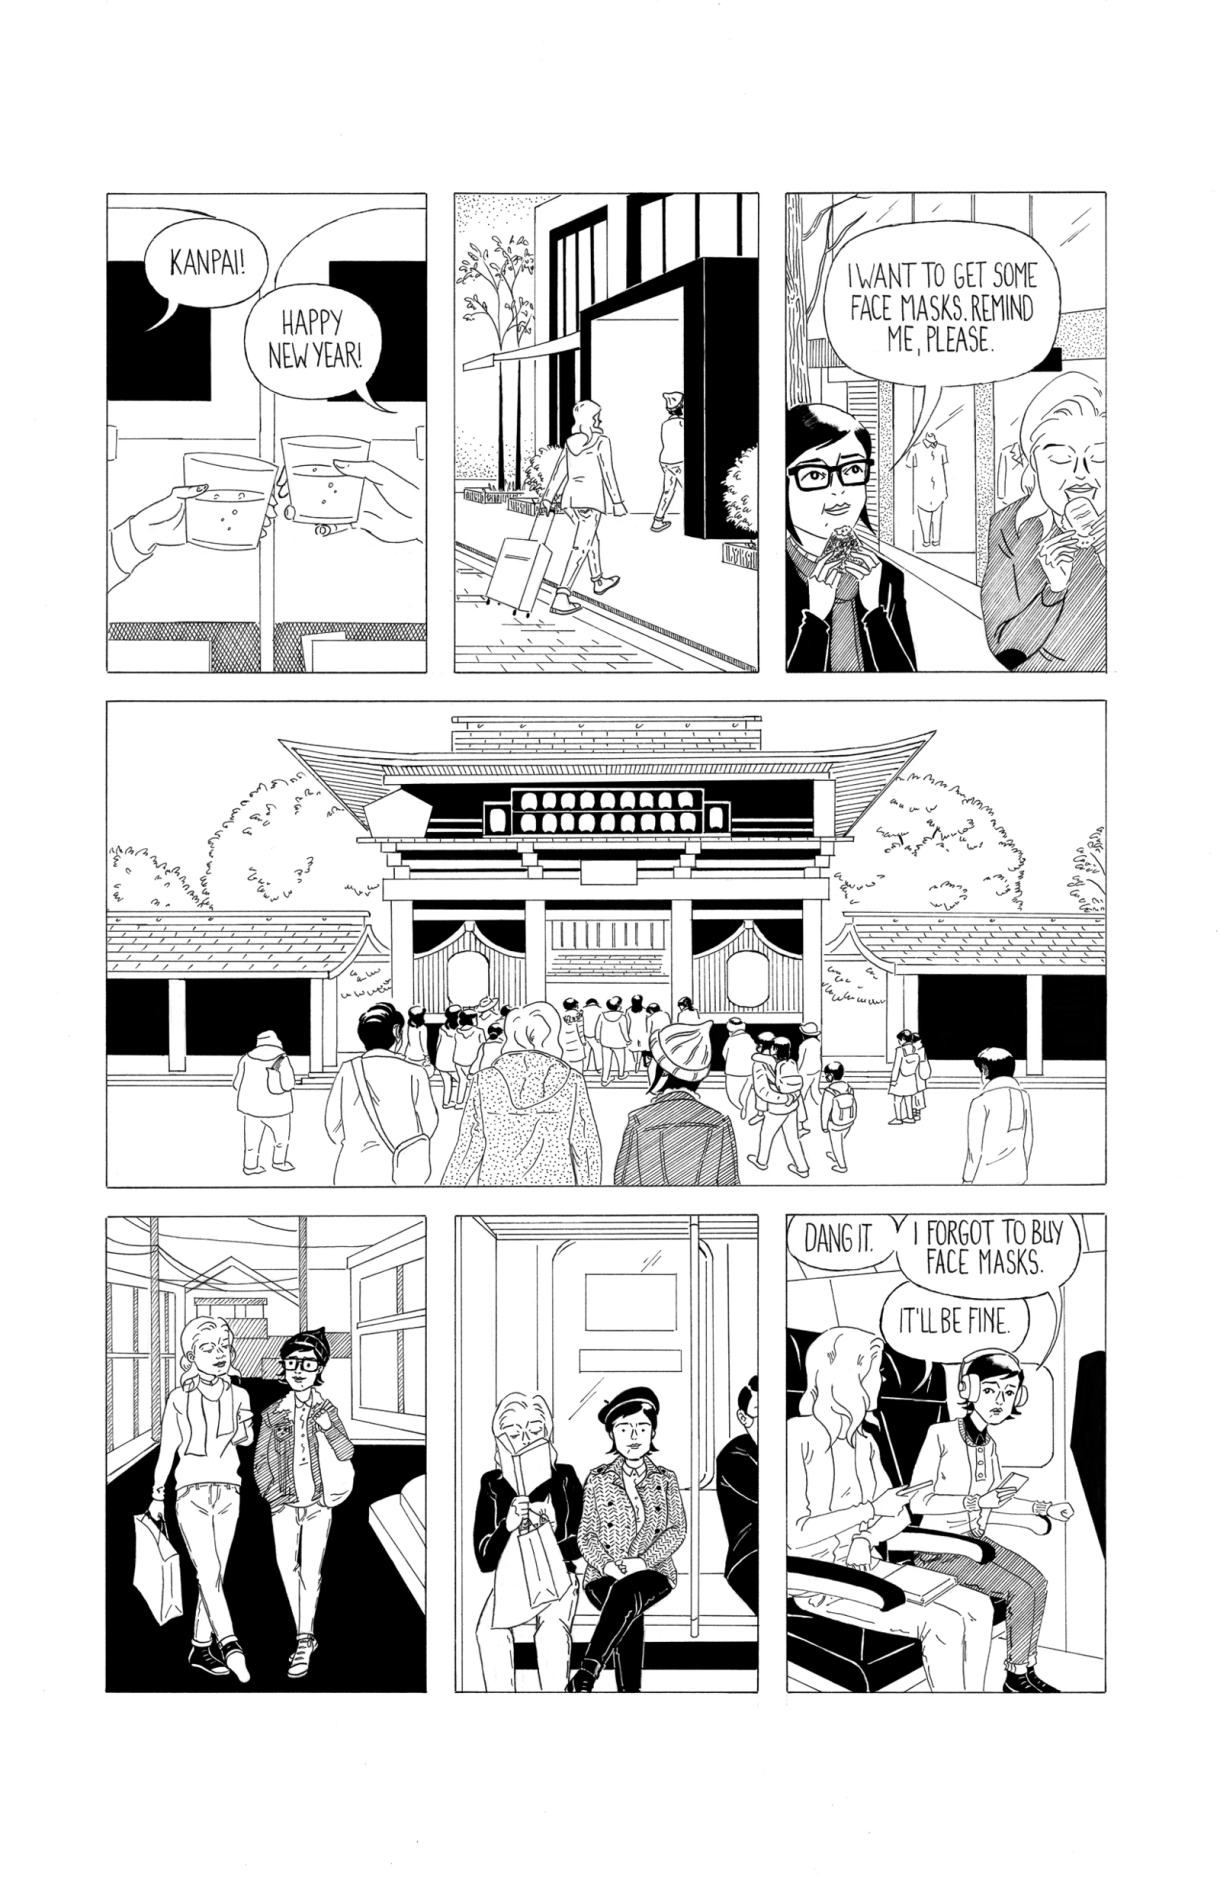 In a seven-panel black and white line drawn comic, Frida and her girlfriend Charlotte visit Japan in 2020. They wish each other a happy new year and enjoy their vacation, but they are some of the few walking around without face masks. Charlotte laments forgetting to buy some, but Frida reassures her that it will be fine.